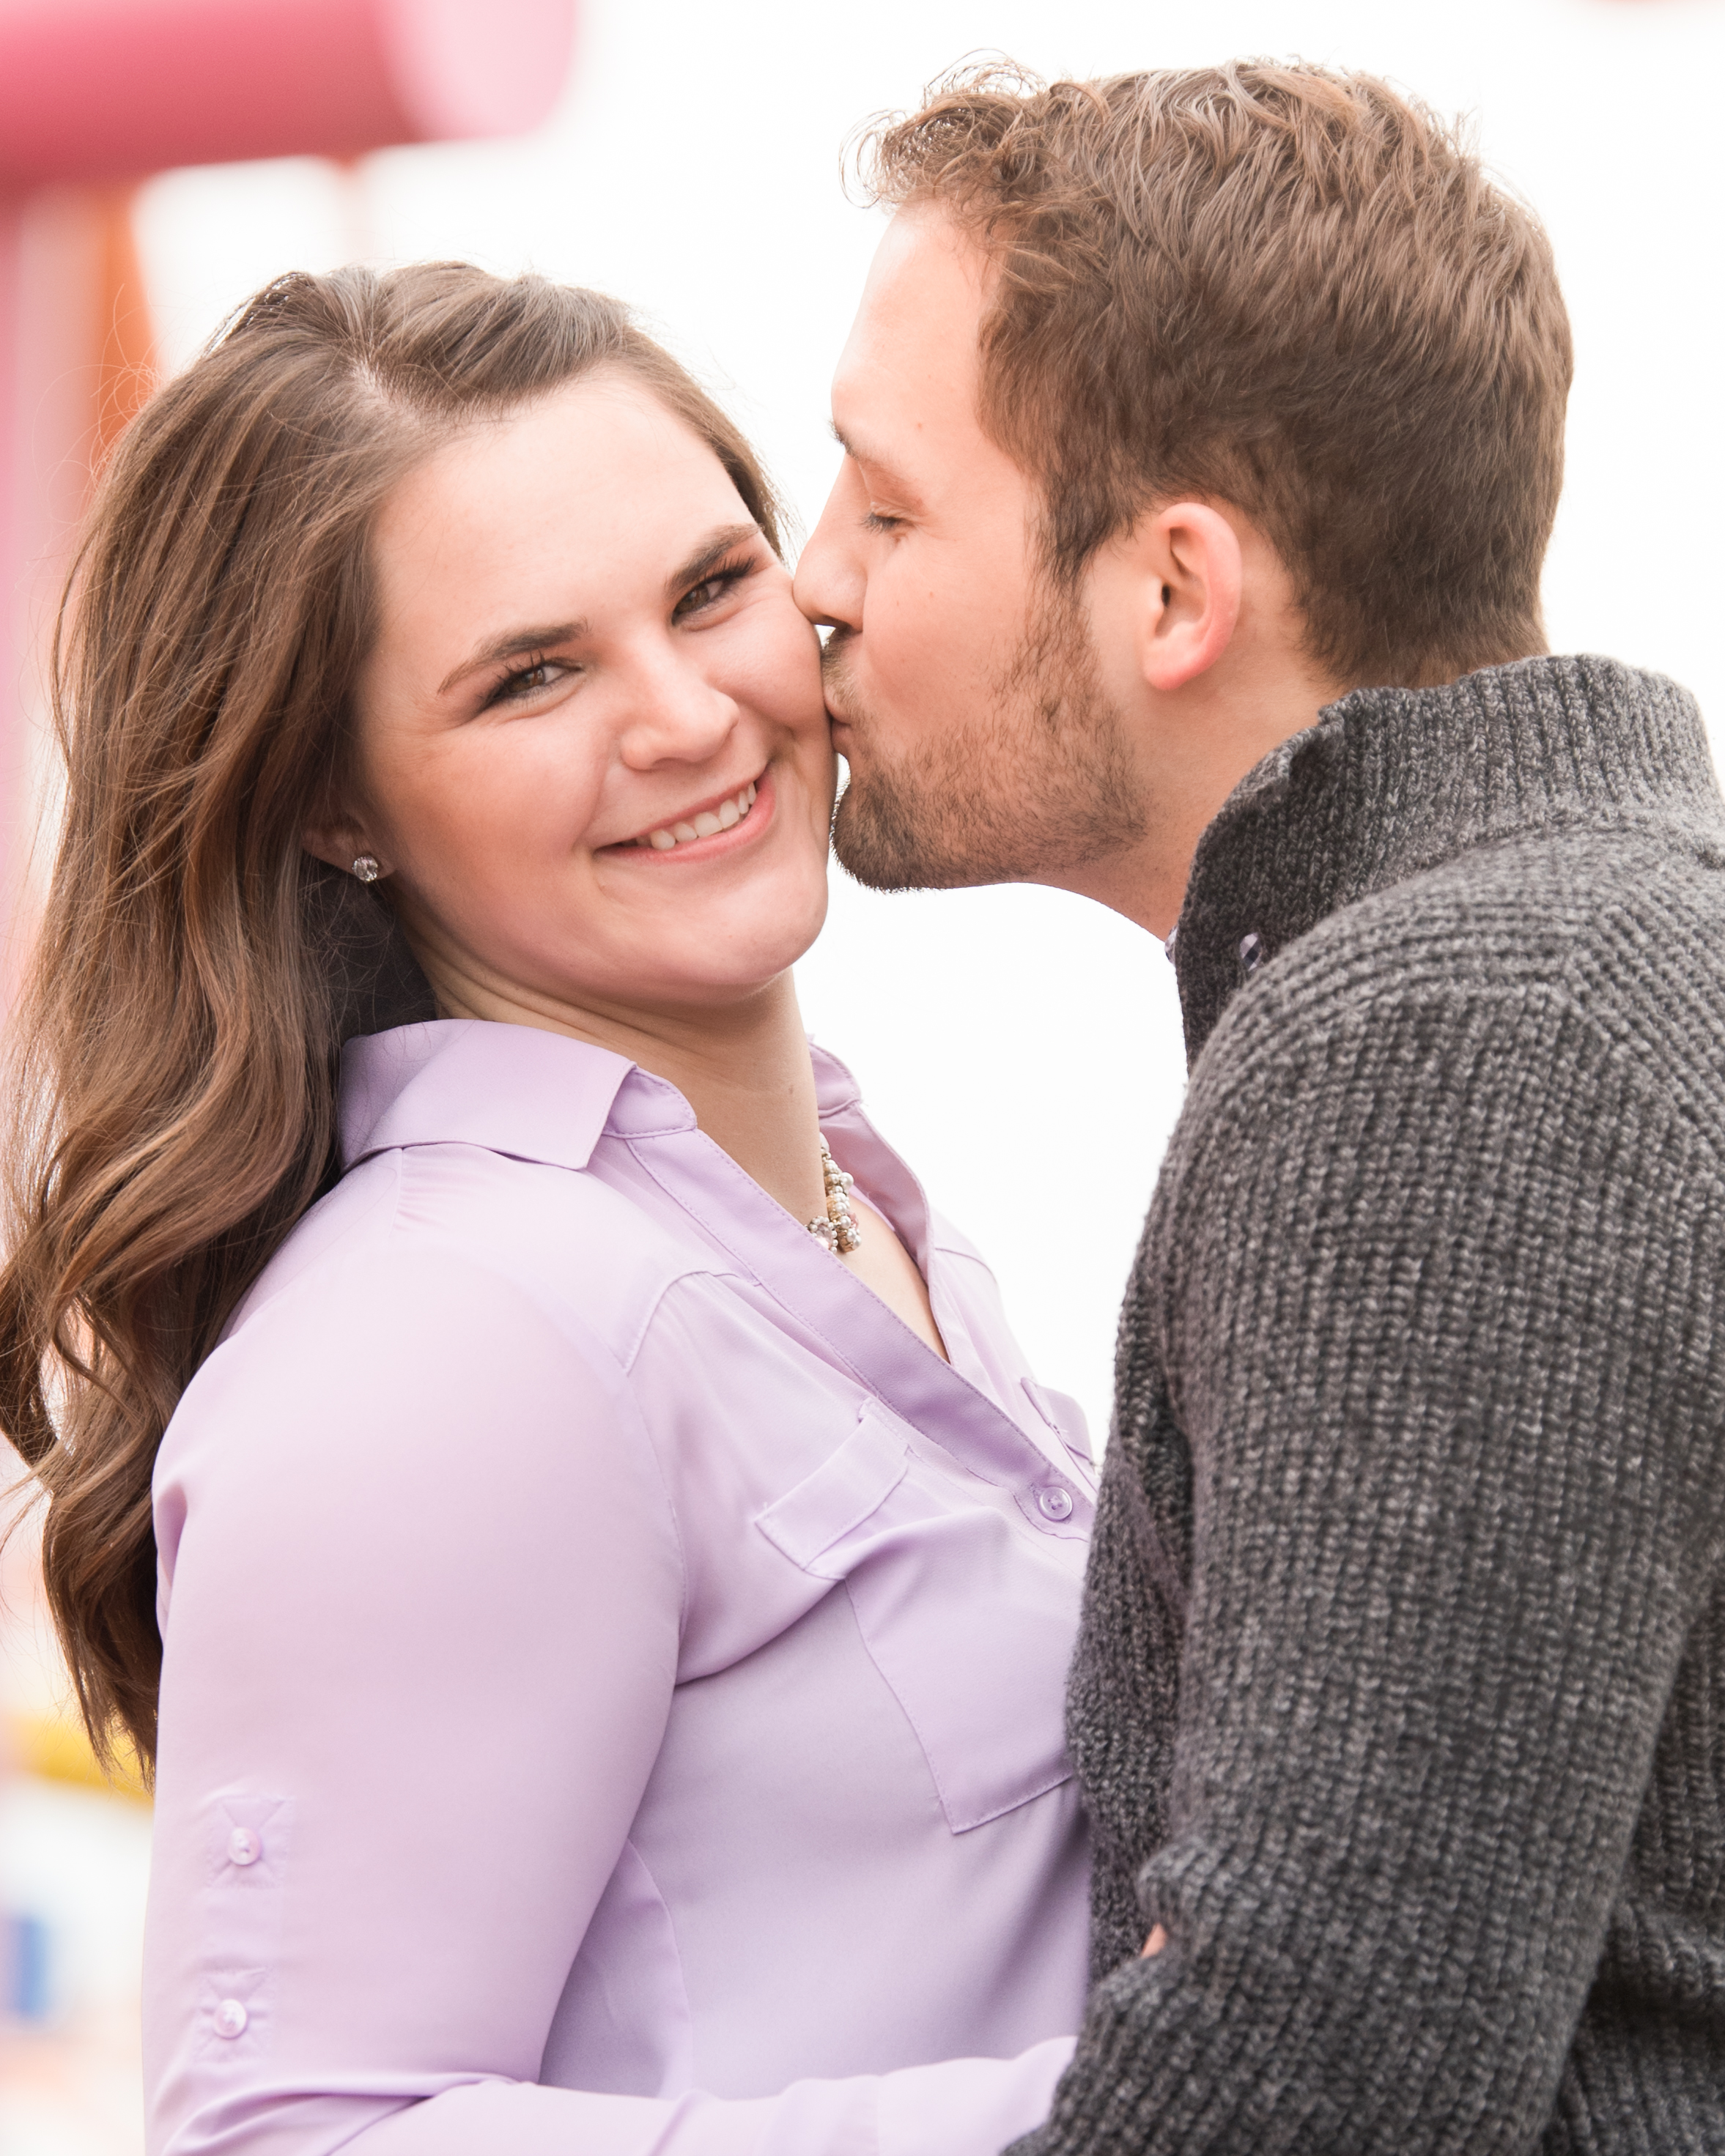 223_2016_January_23-Mary_AJ_SantaMonicaPier_Proposal_Engagement_Shoot-14778-Edit.jpg